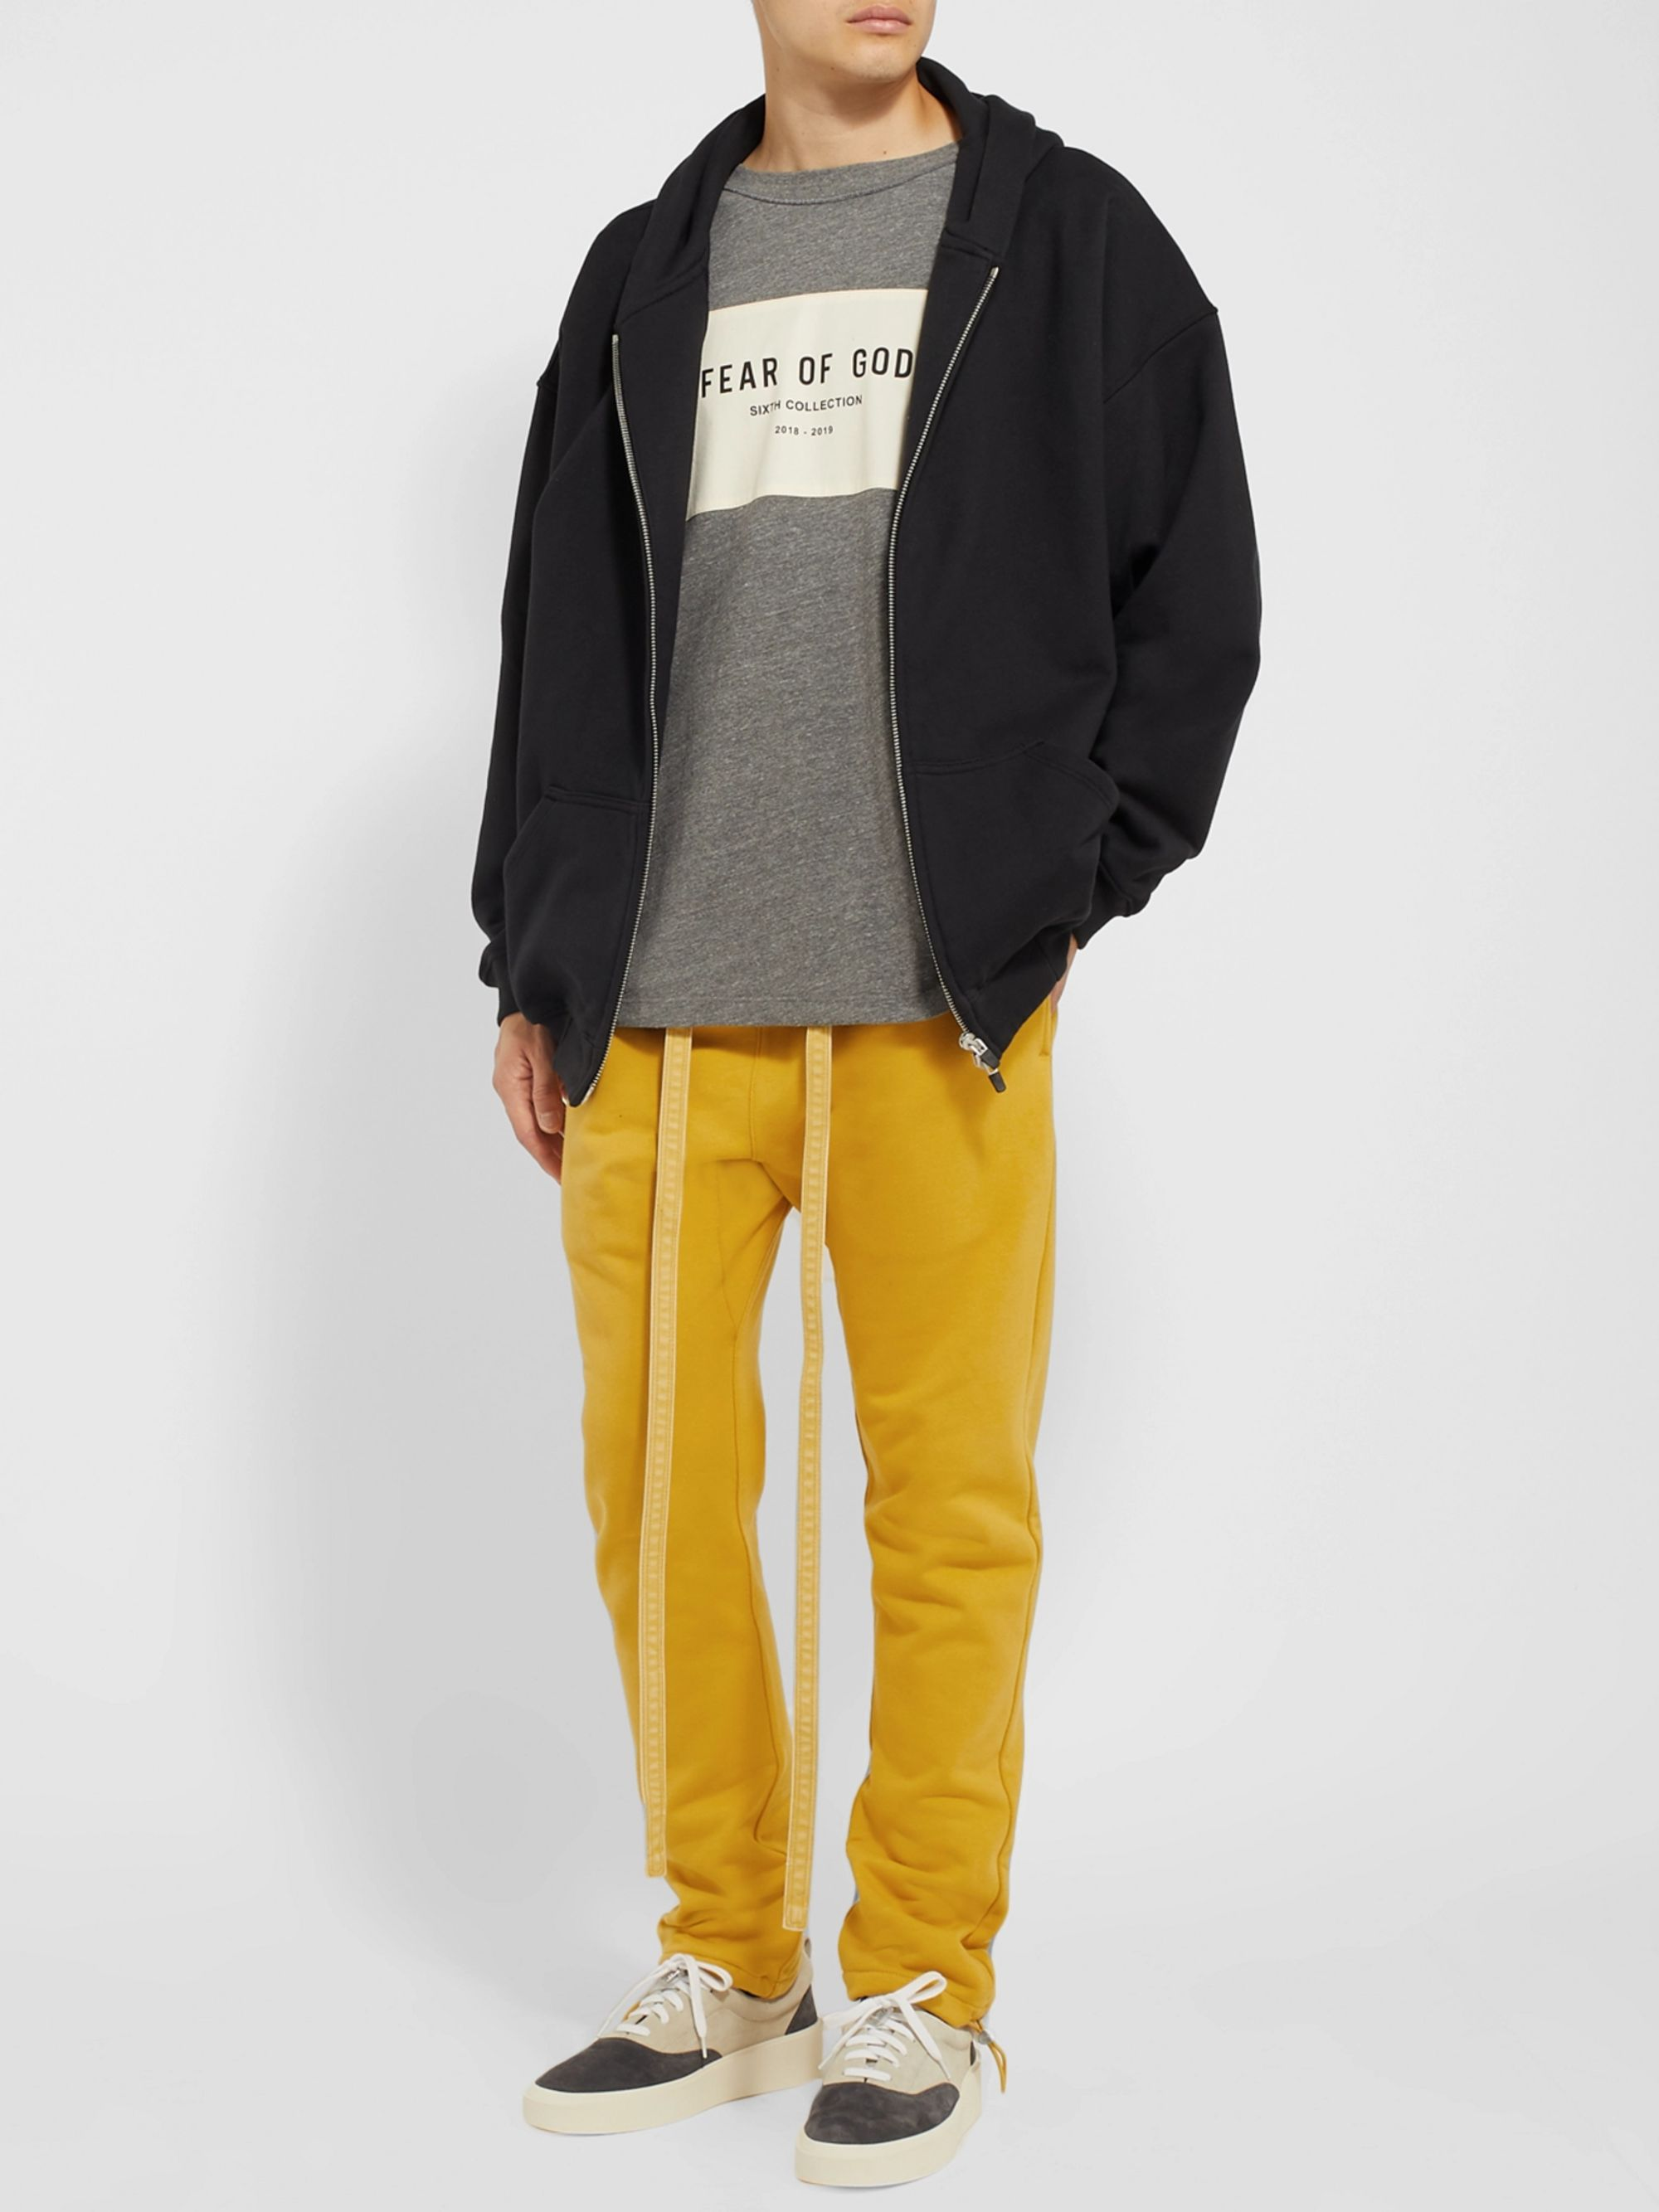 Fear of God Slim-Fit Tapered Mélange Loopback Cotton-Blend Jersey Sweatpants